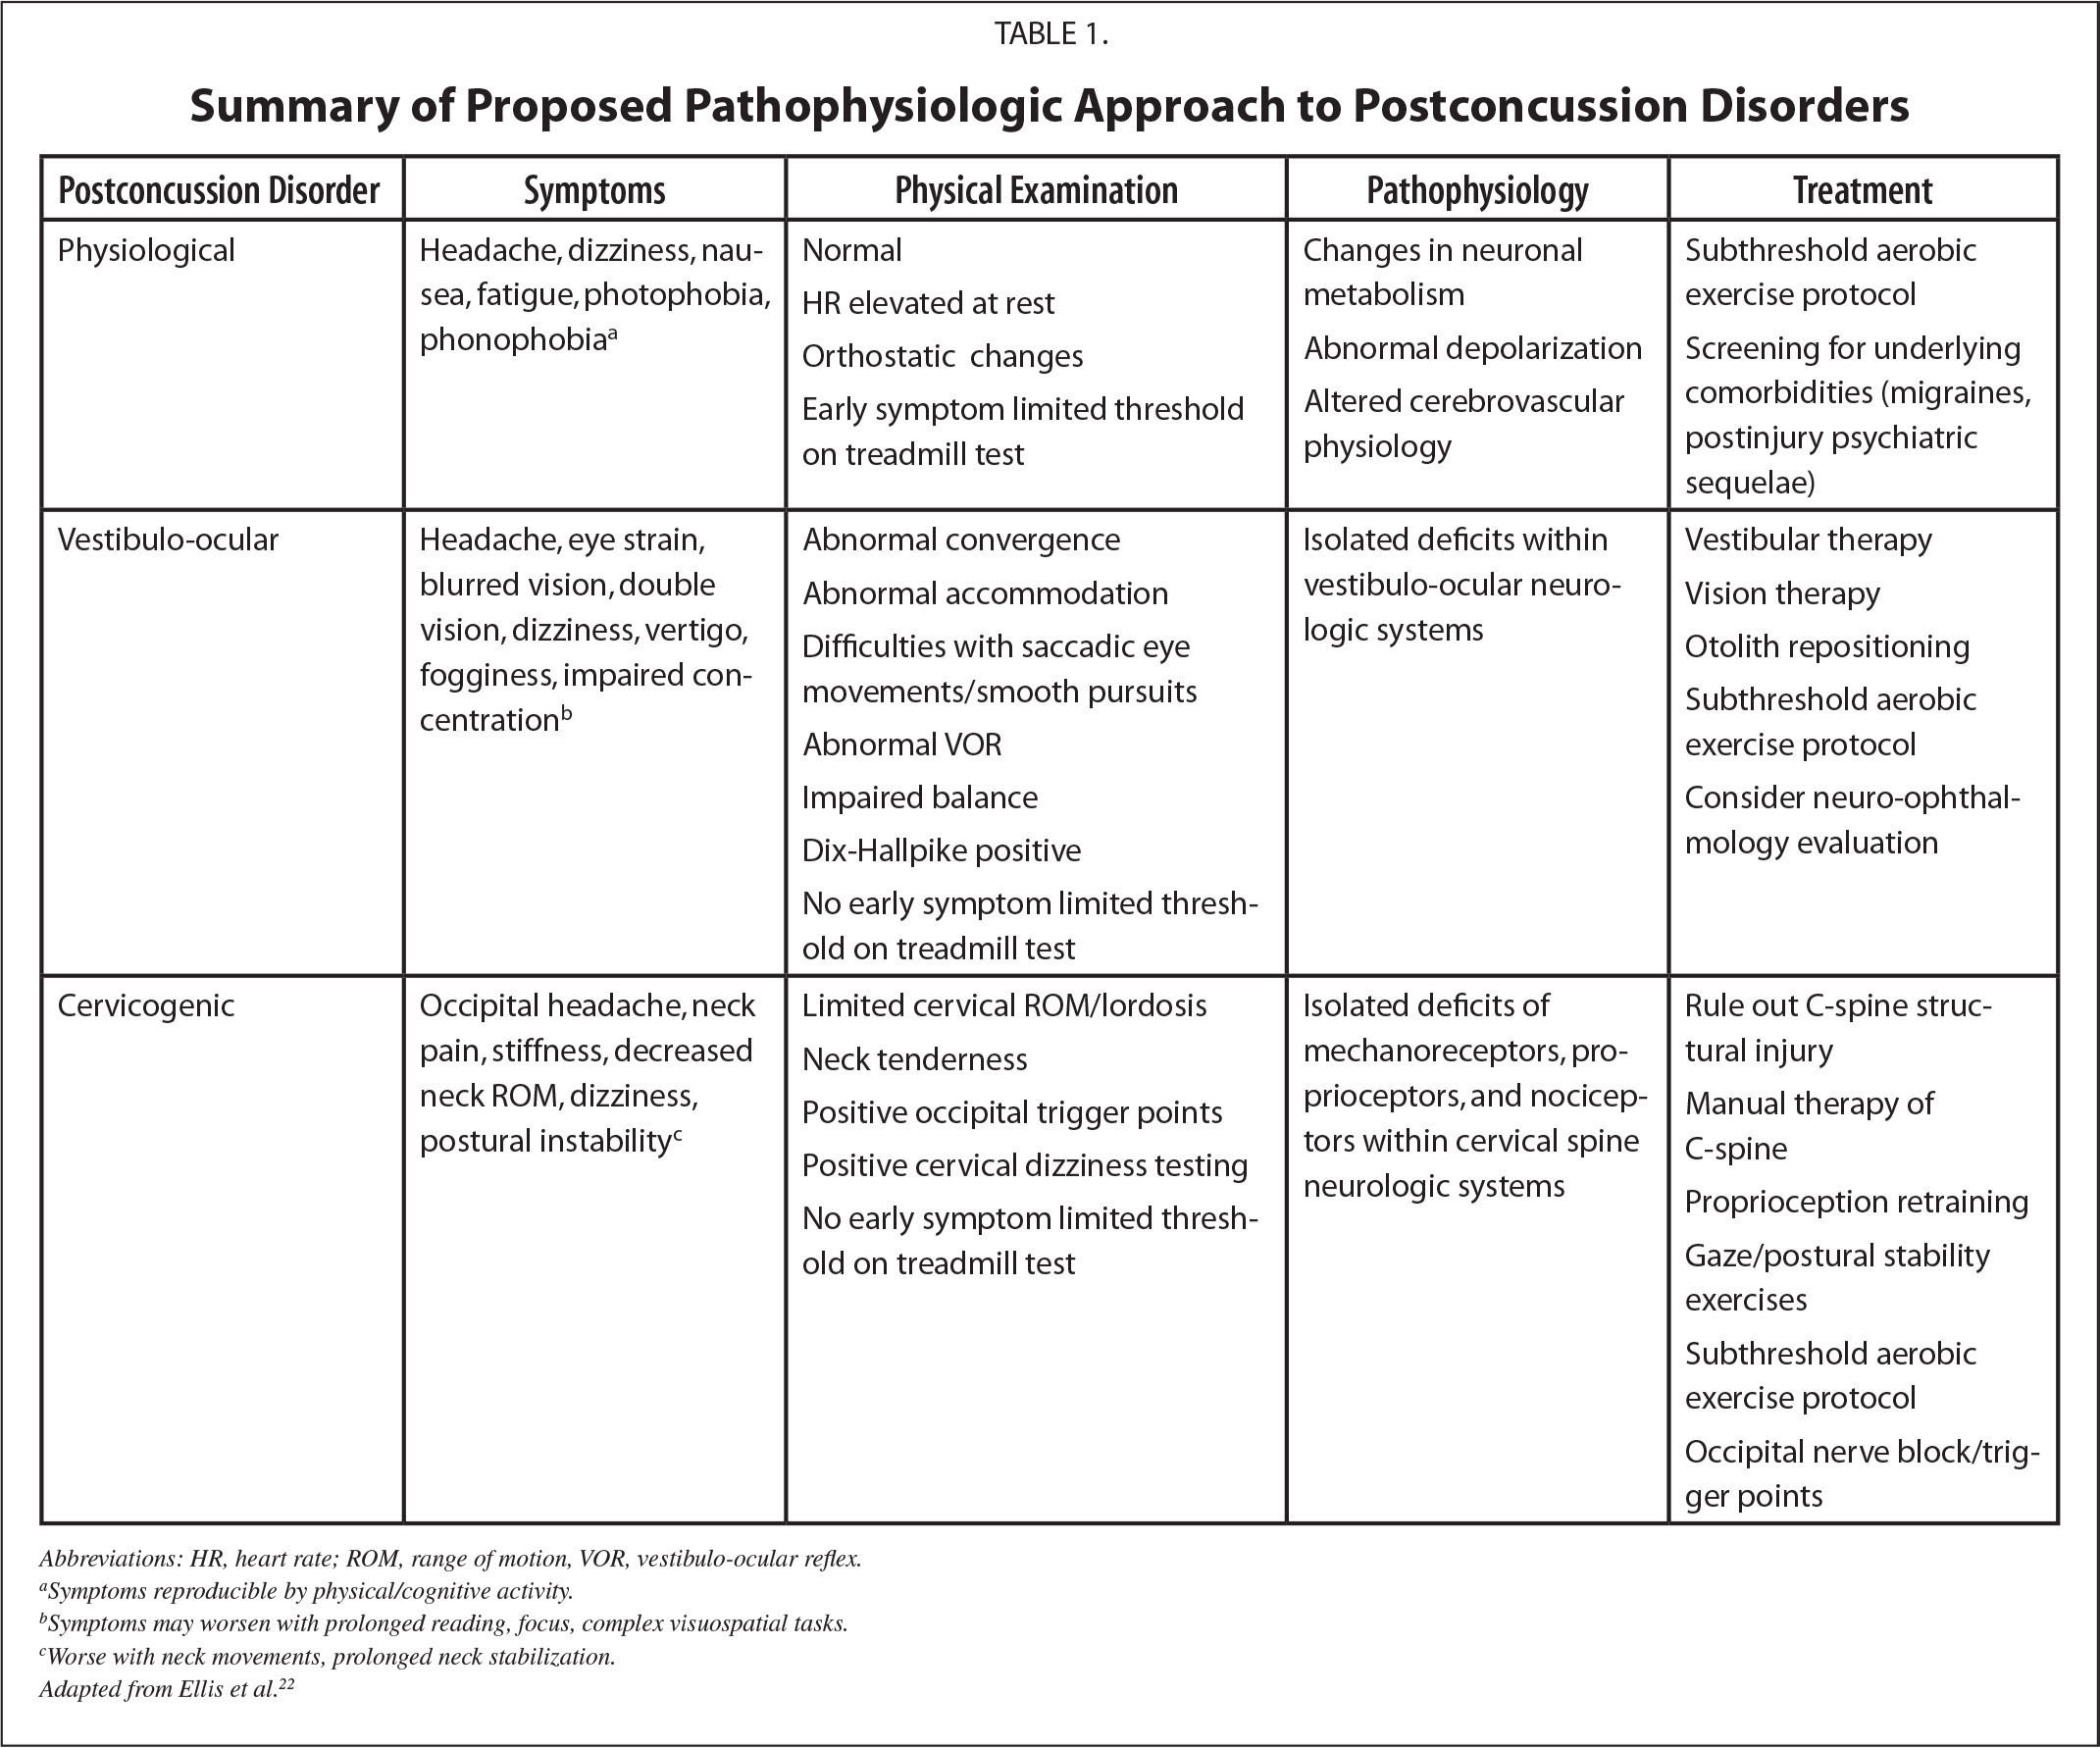 Summary of Proposed Pathophysiologic Approach to Postconcussion Disorders